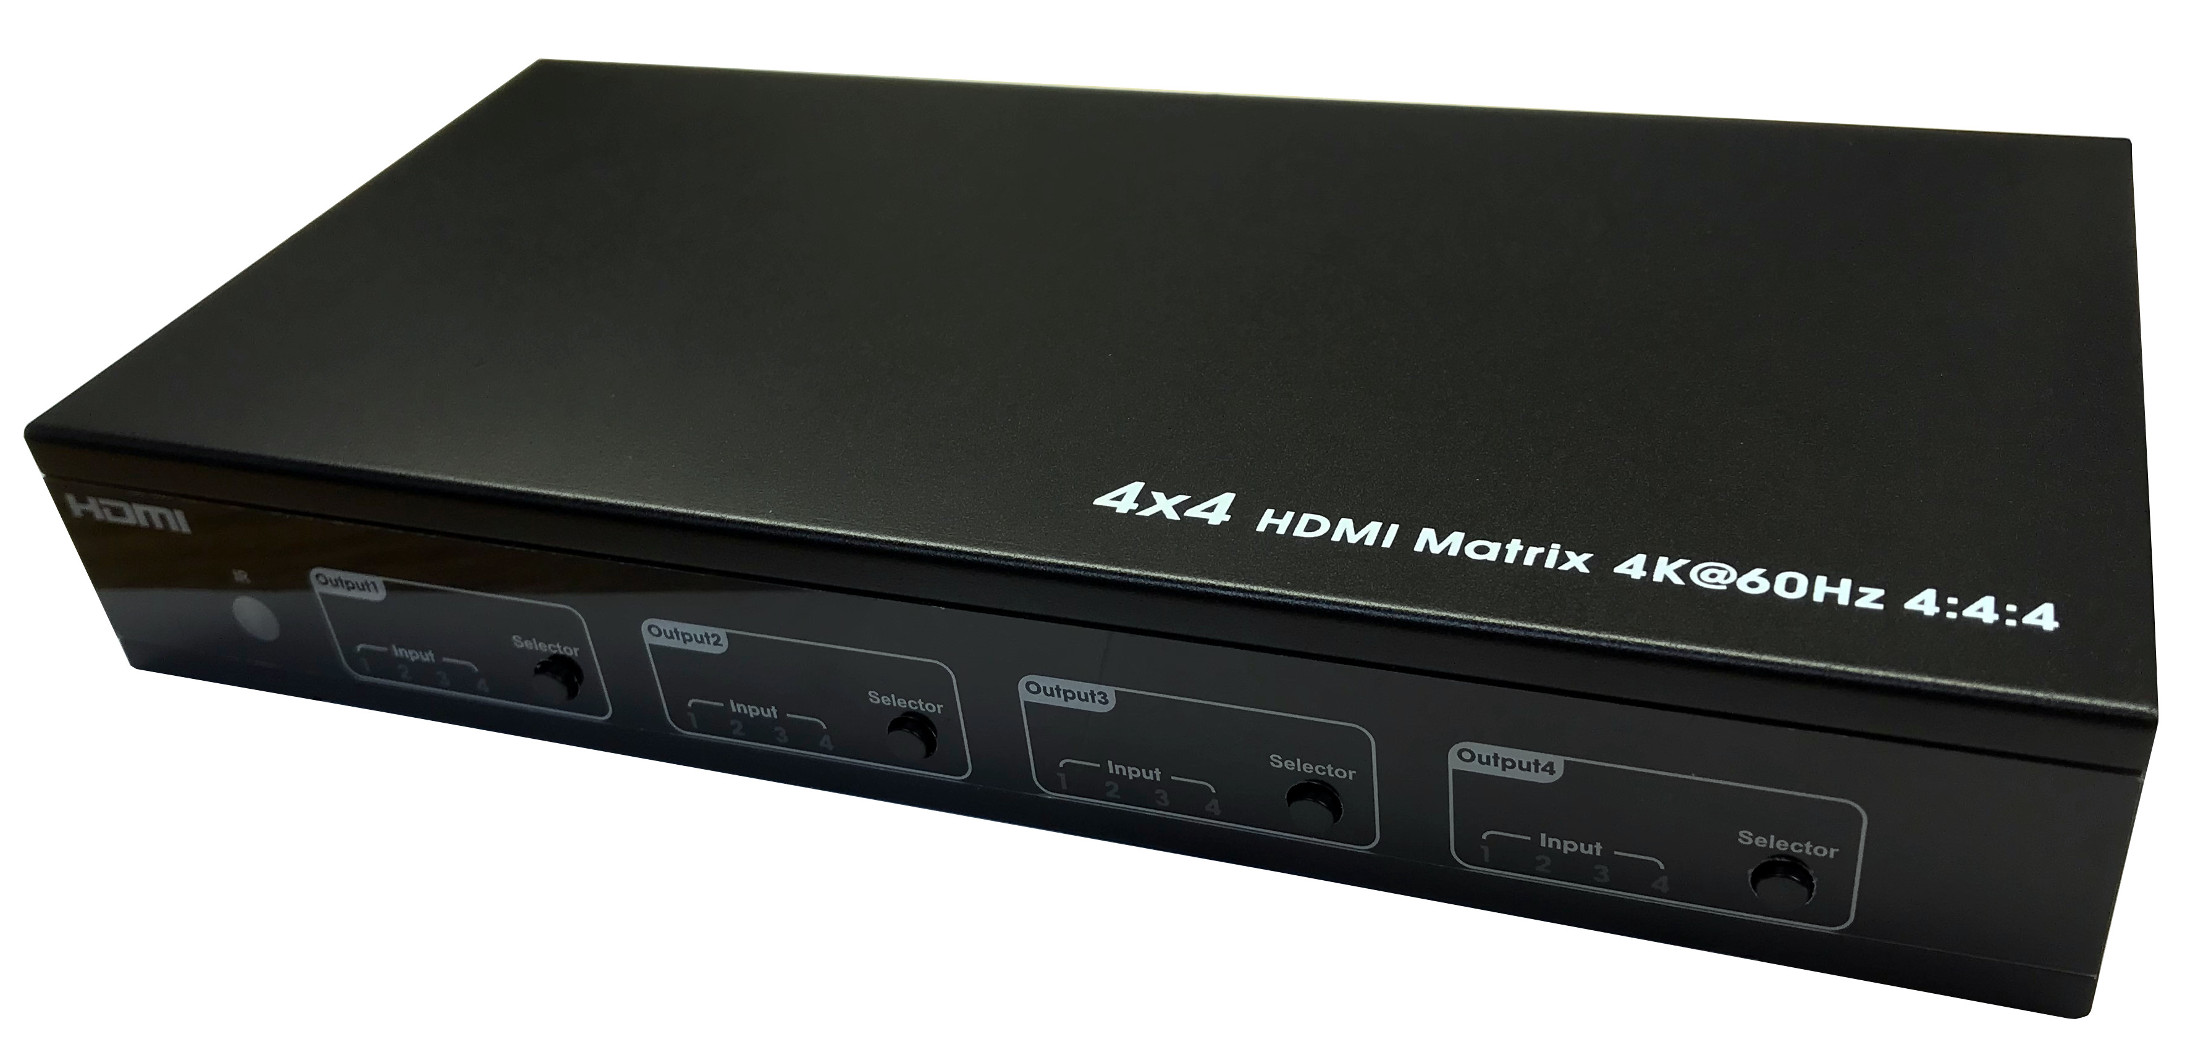 301062 - 4x4 HDMI 2.0 Matrix Switch - 4K, HDR, HDCP 2.2, 18Gbps, IP and RS232 Control